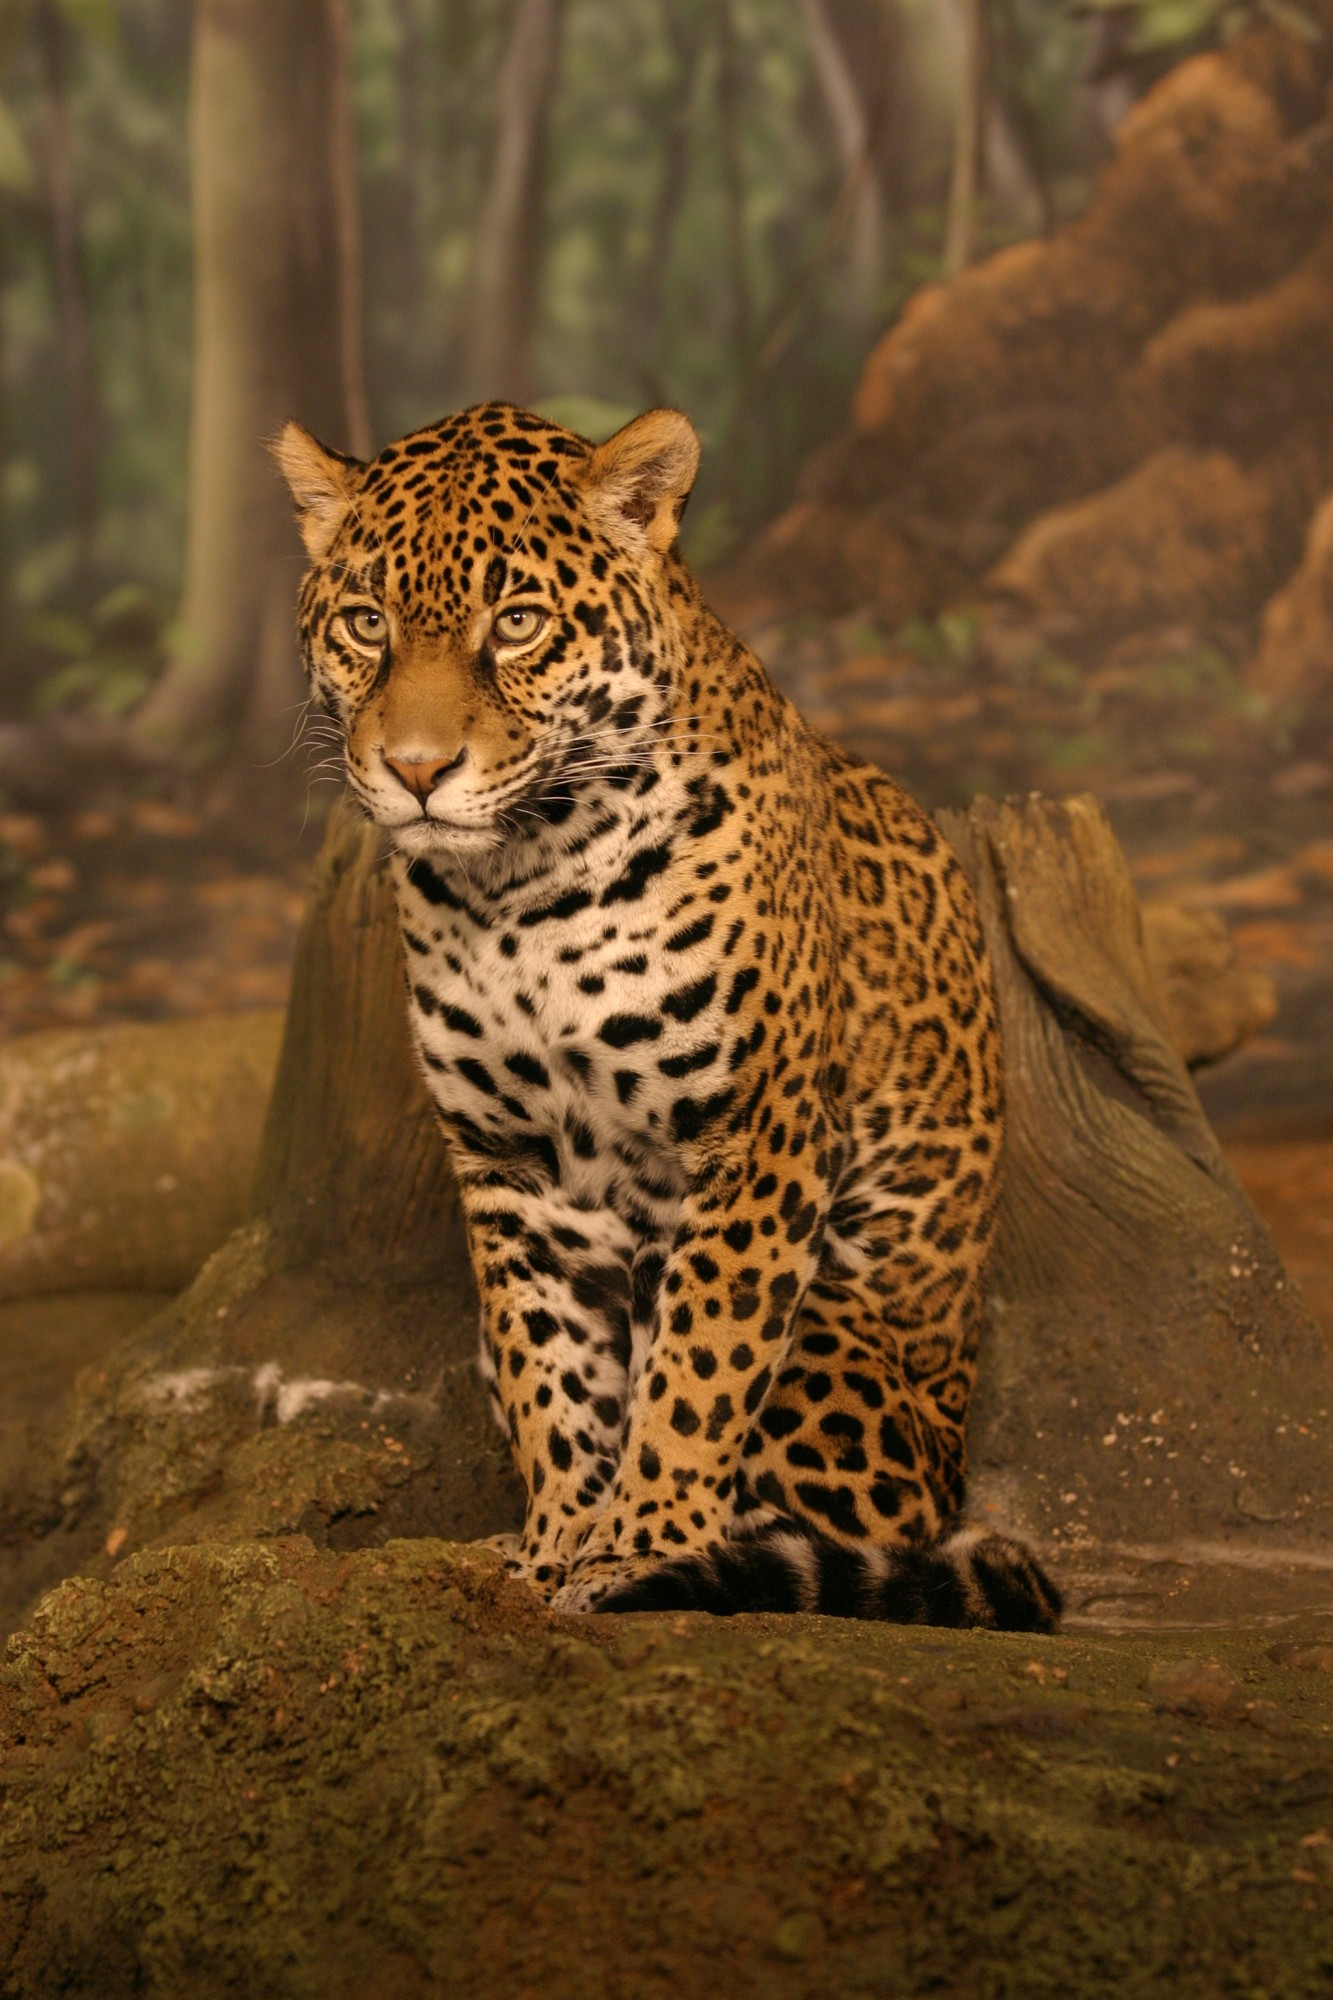 Jaguar (from C. Burnet, Creative Commons Attribution ShareAlike)